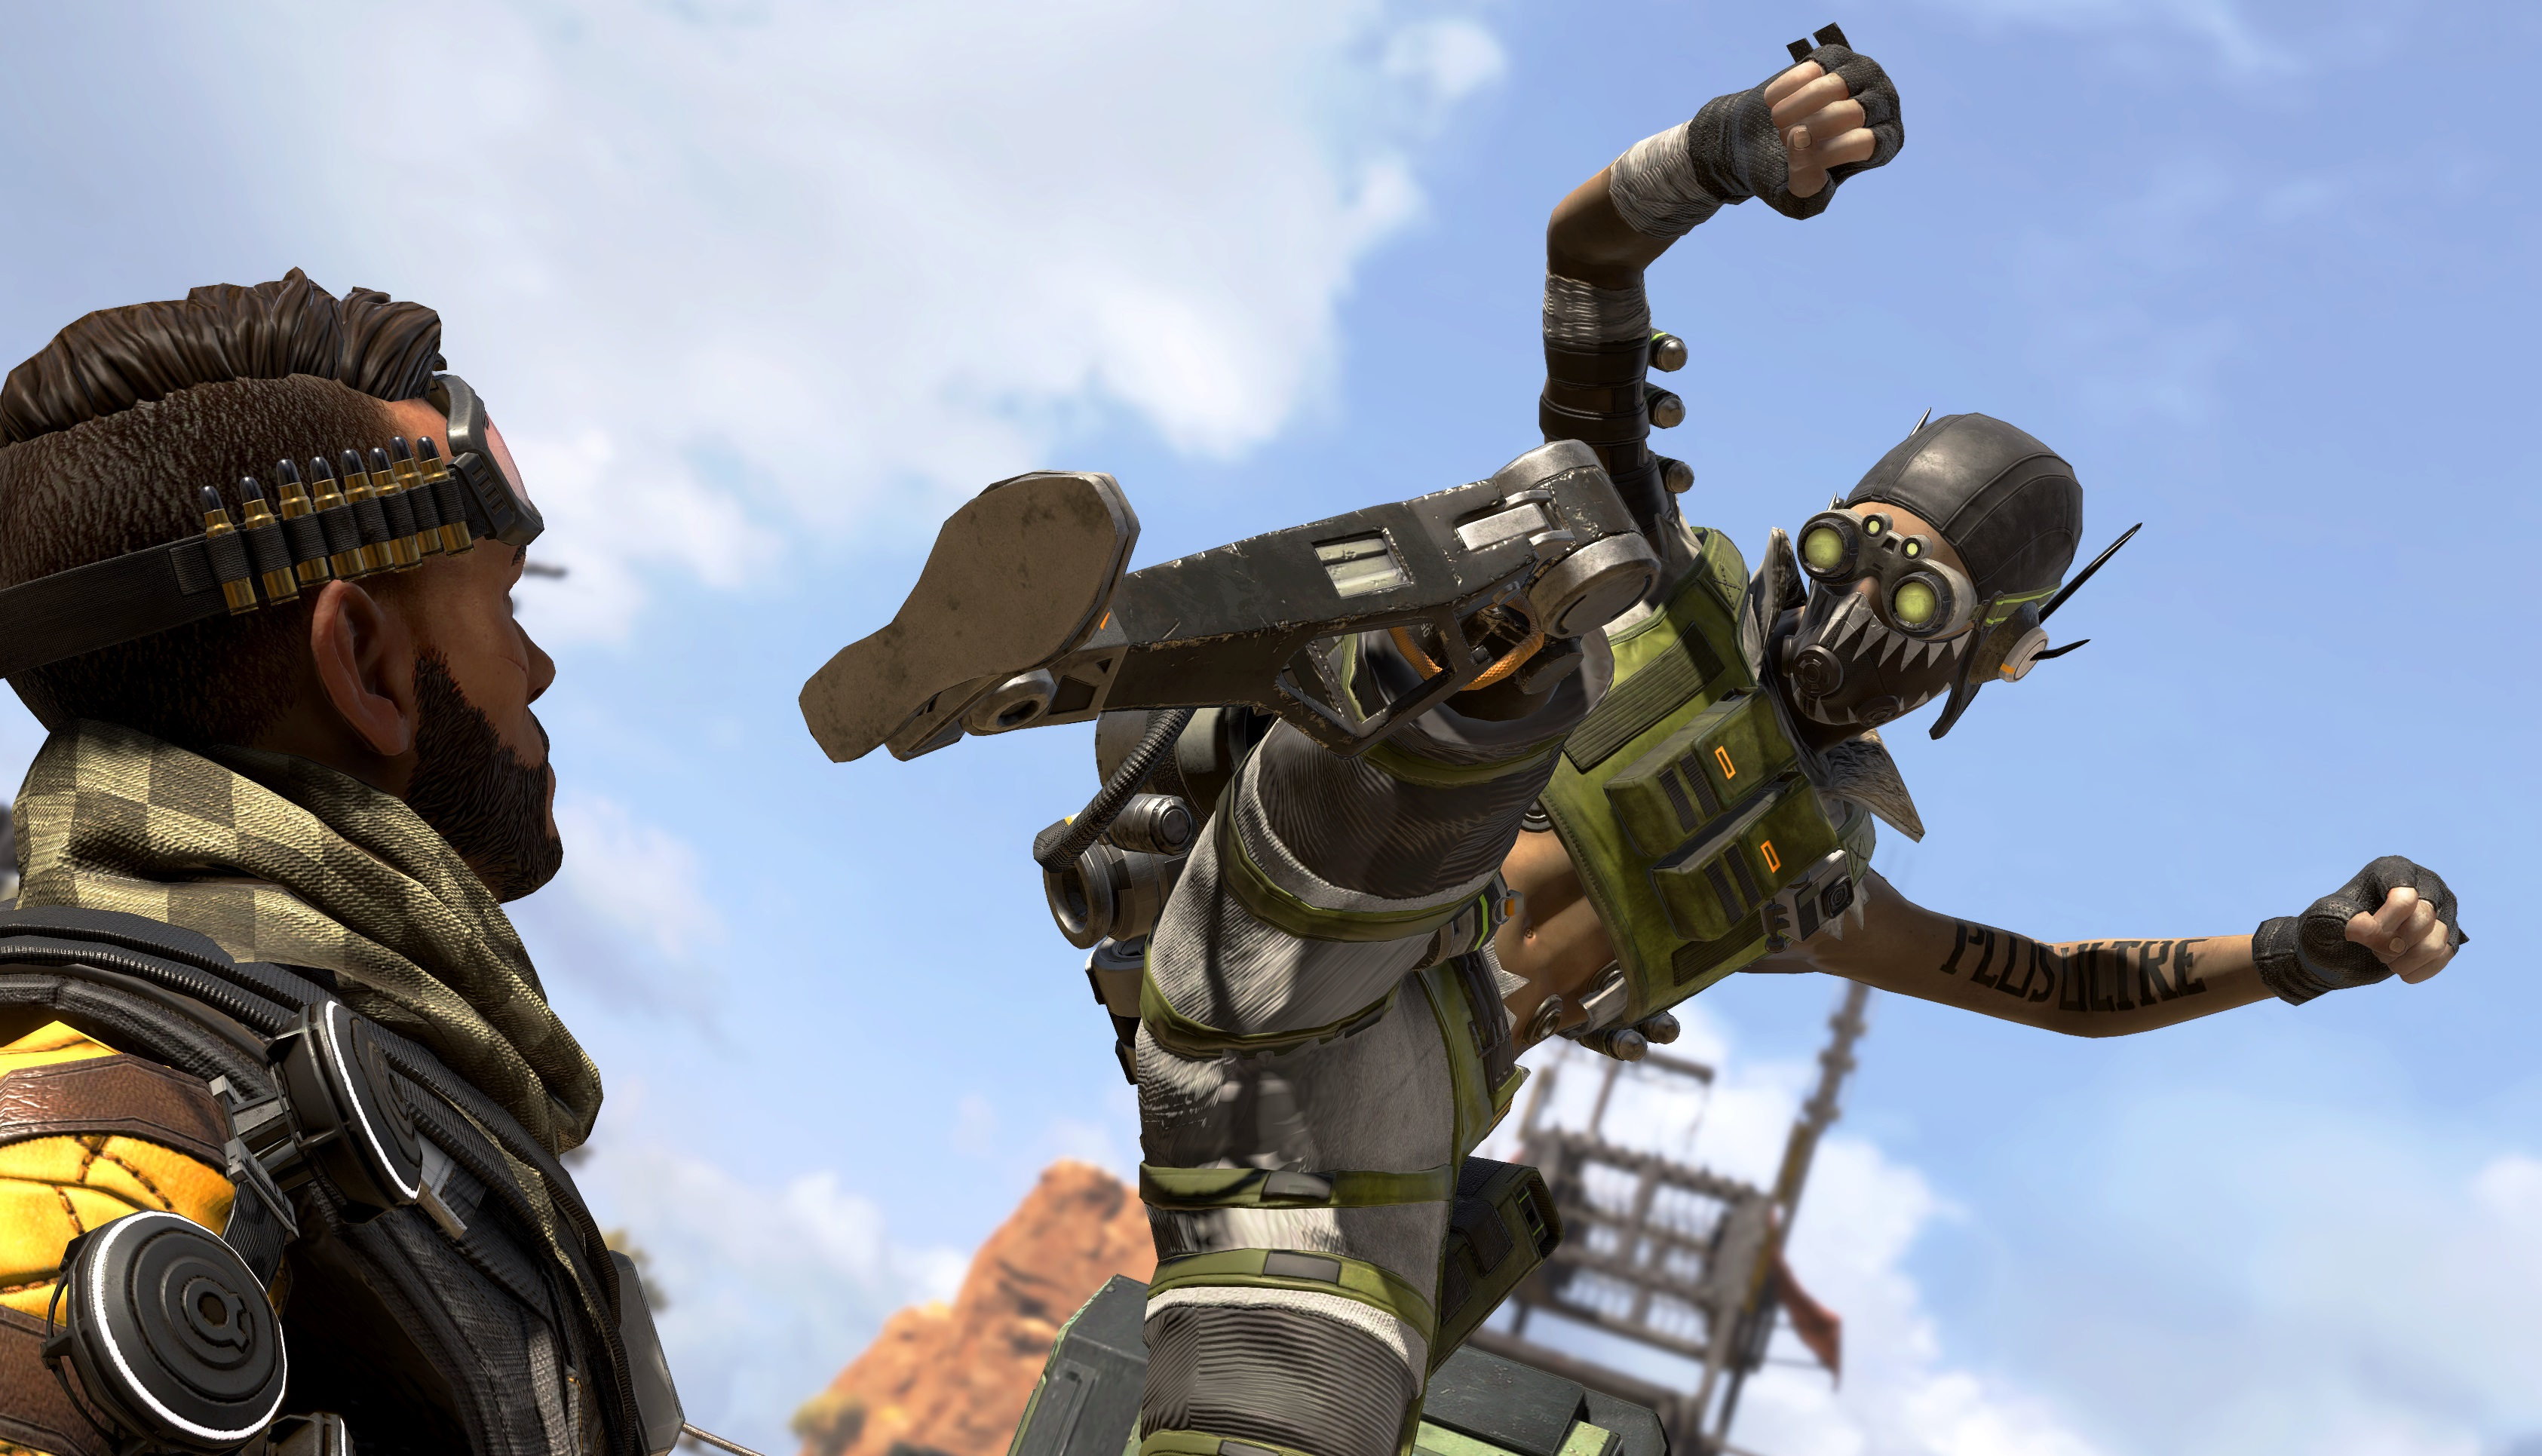 Apex Legends isn't 'well suited' for streaming services like Stadia, Respawn producer says | PC Gamer